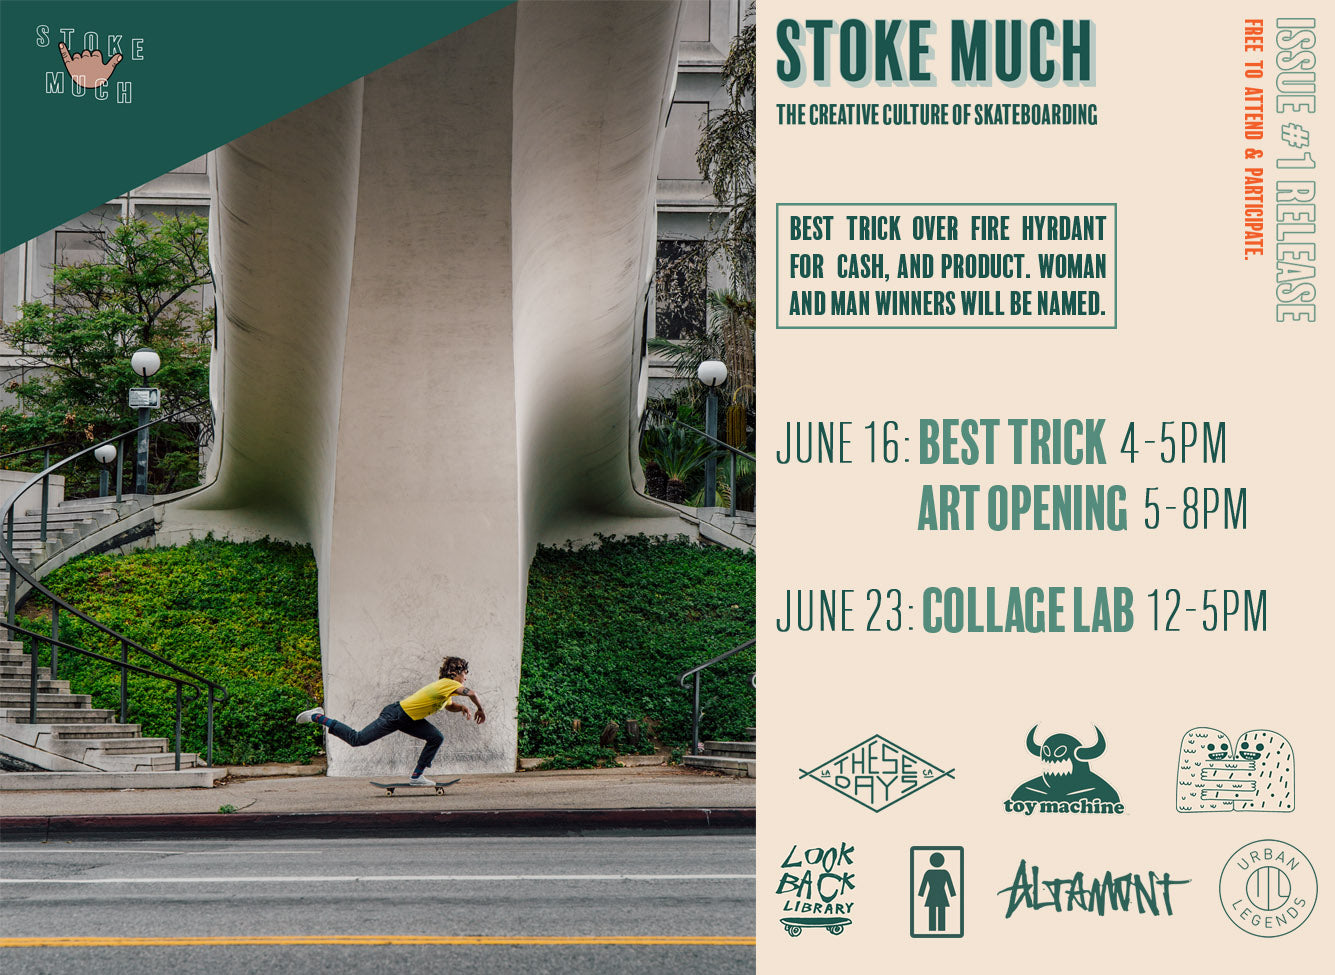 STOKE MUCH | The Creative Culture of Skateboarding